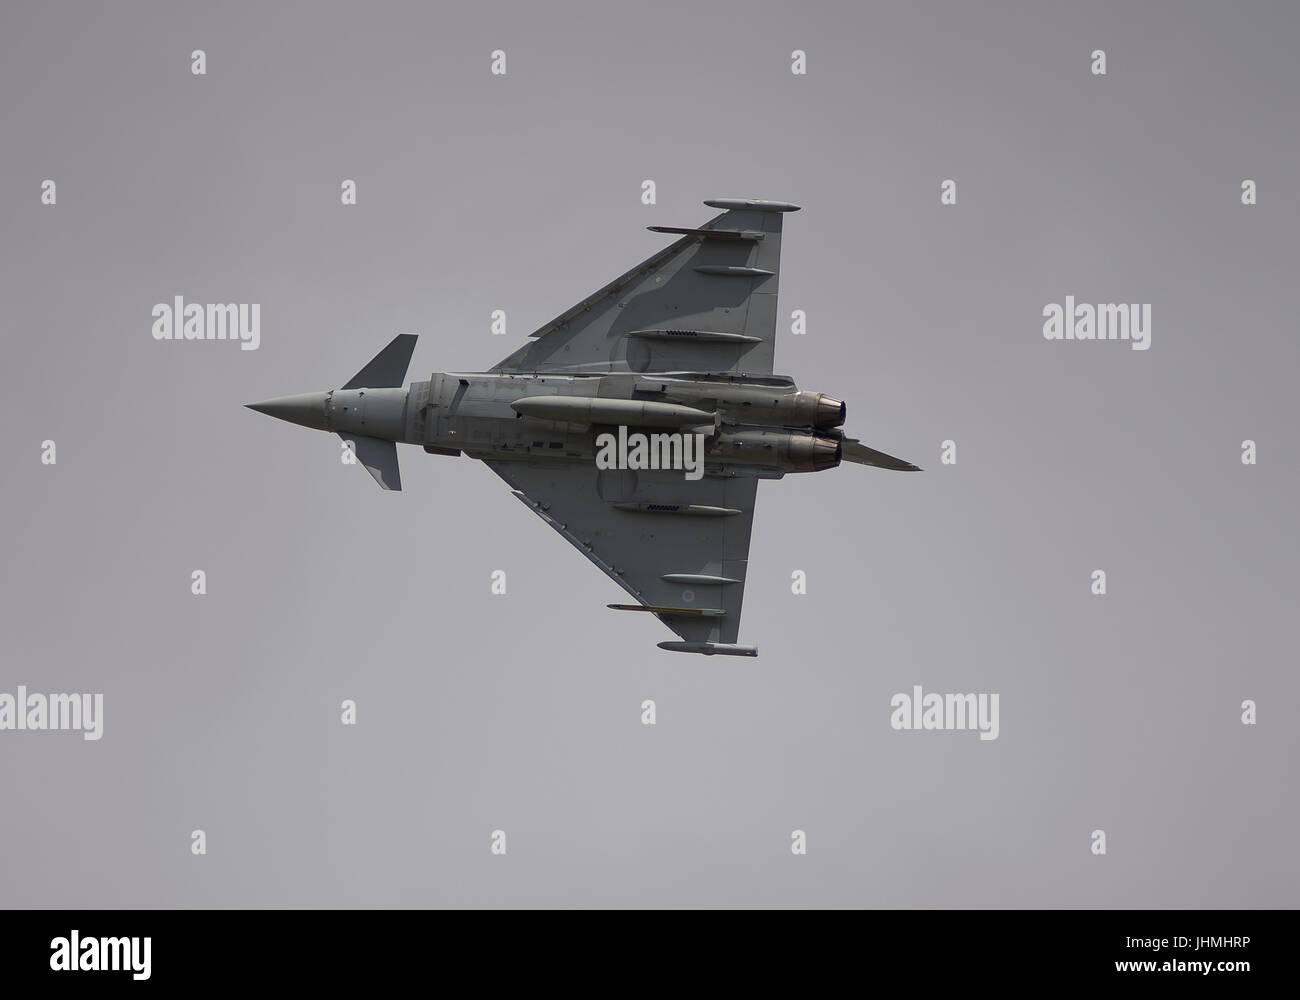 RAF Fairford, Gloucestershire, UK. 14th July 2017. First day of the Royal International Air Tattoo (RIAT), one of Stock Photo